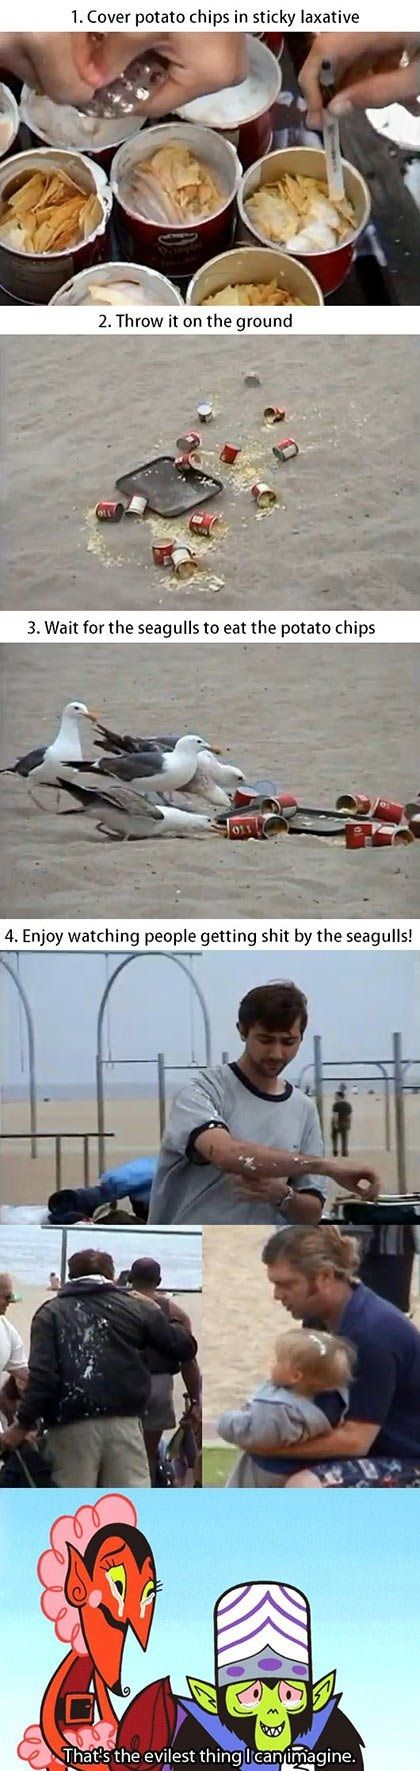 """Prank with People on Beach - Meme """"that's just wrong"""""""